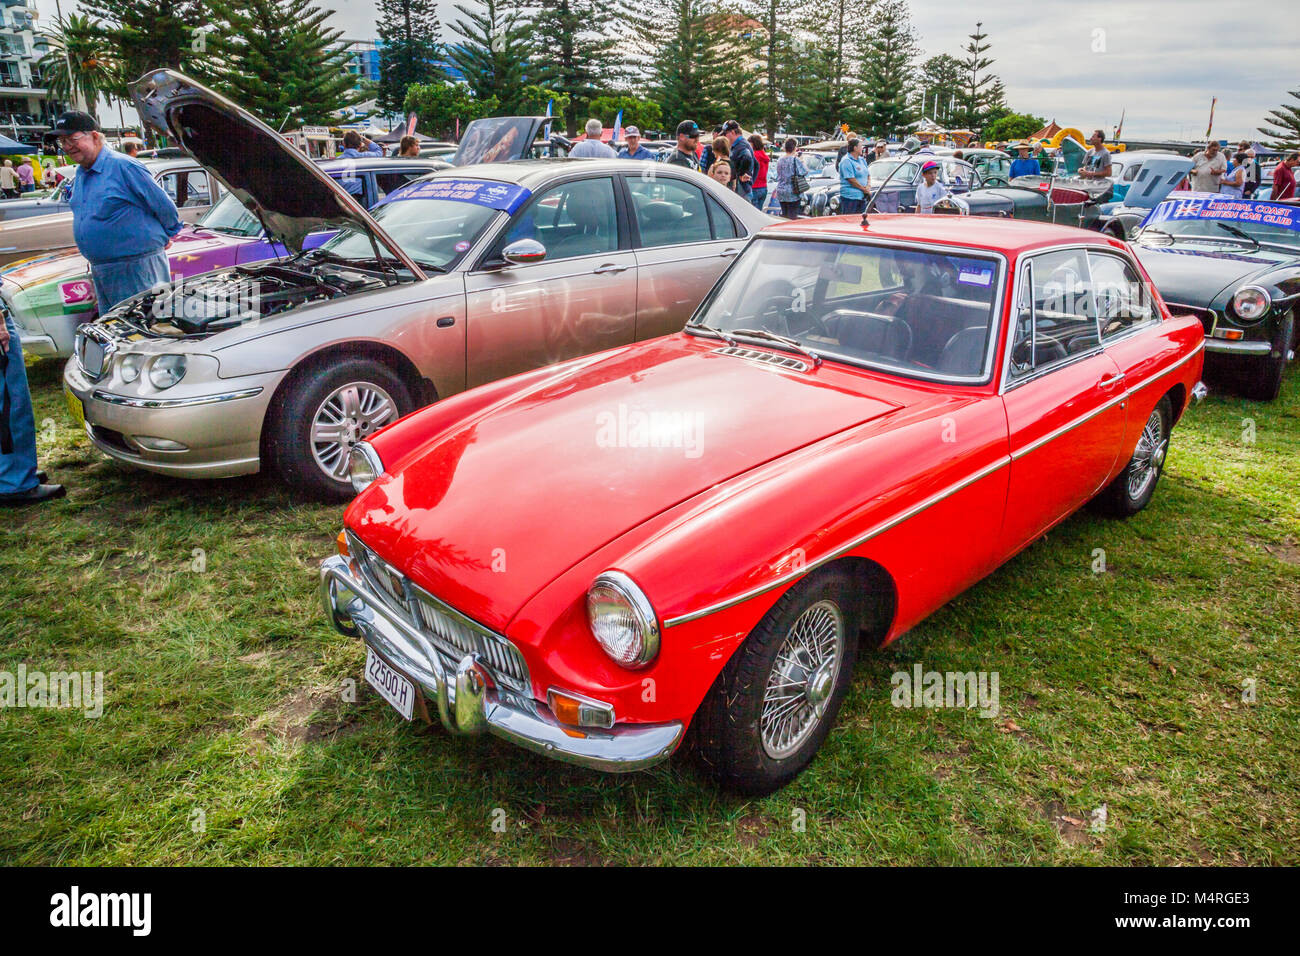 Australia, New South Wales, Central Coast, 1965 MG MGB GT sports car, exhibited during the Central Coast Historic - Stock Image